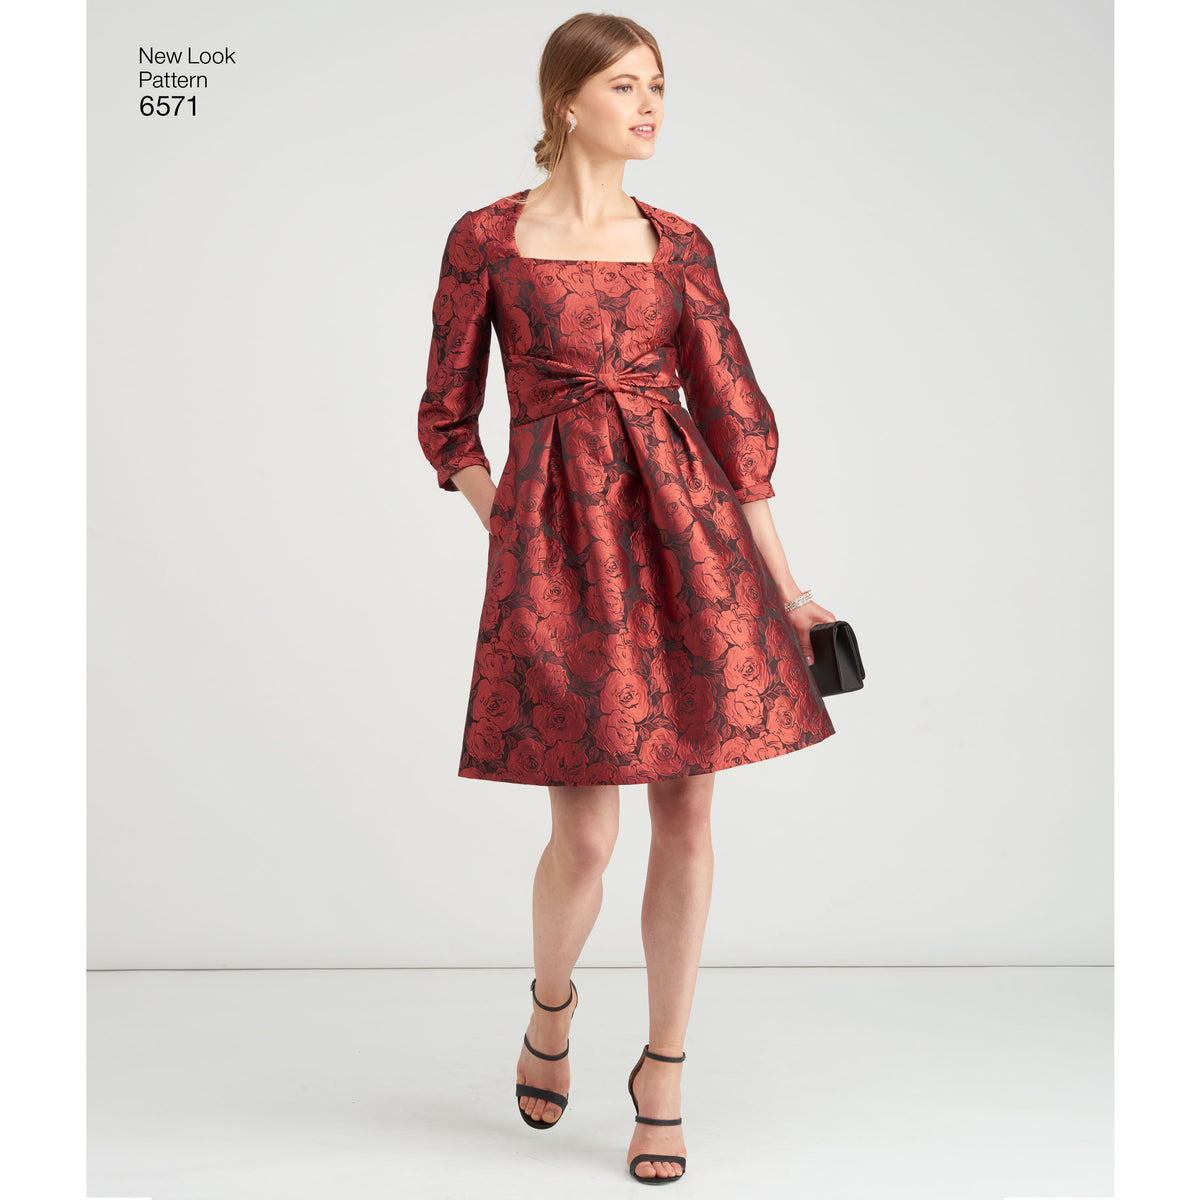 6571 New Look Pattern 6571 Misses' Dresses